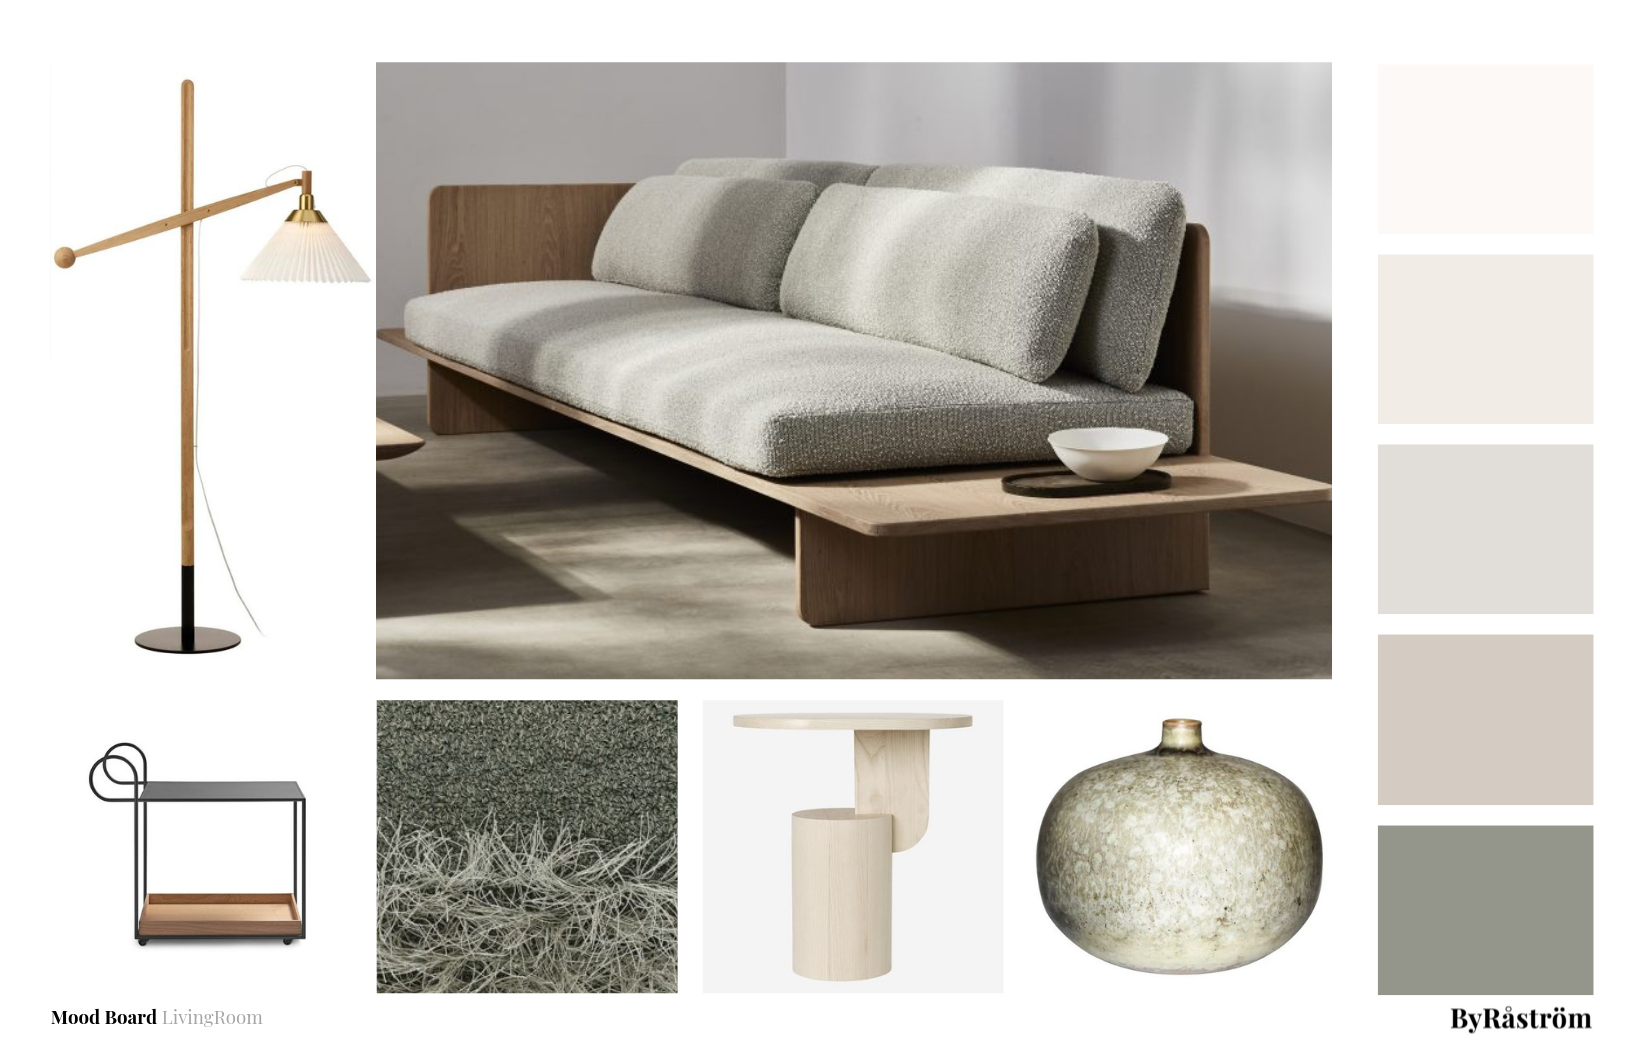 Mood Board Living Room Au Naturel